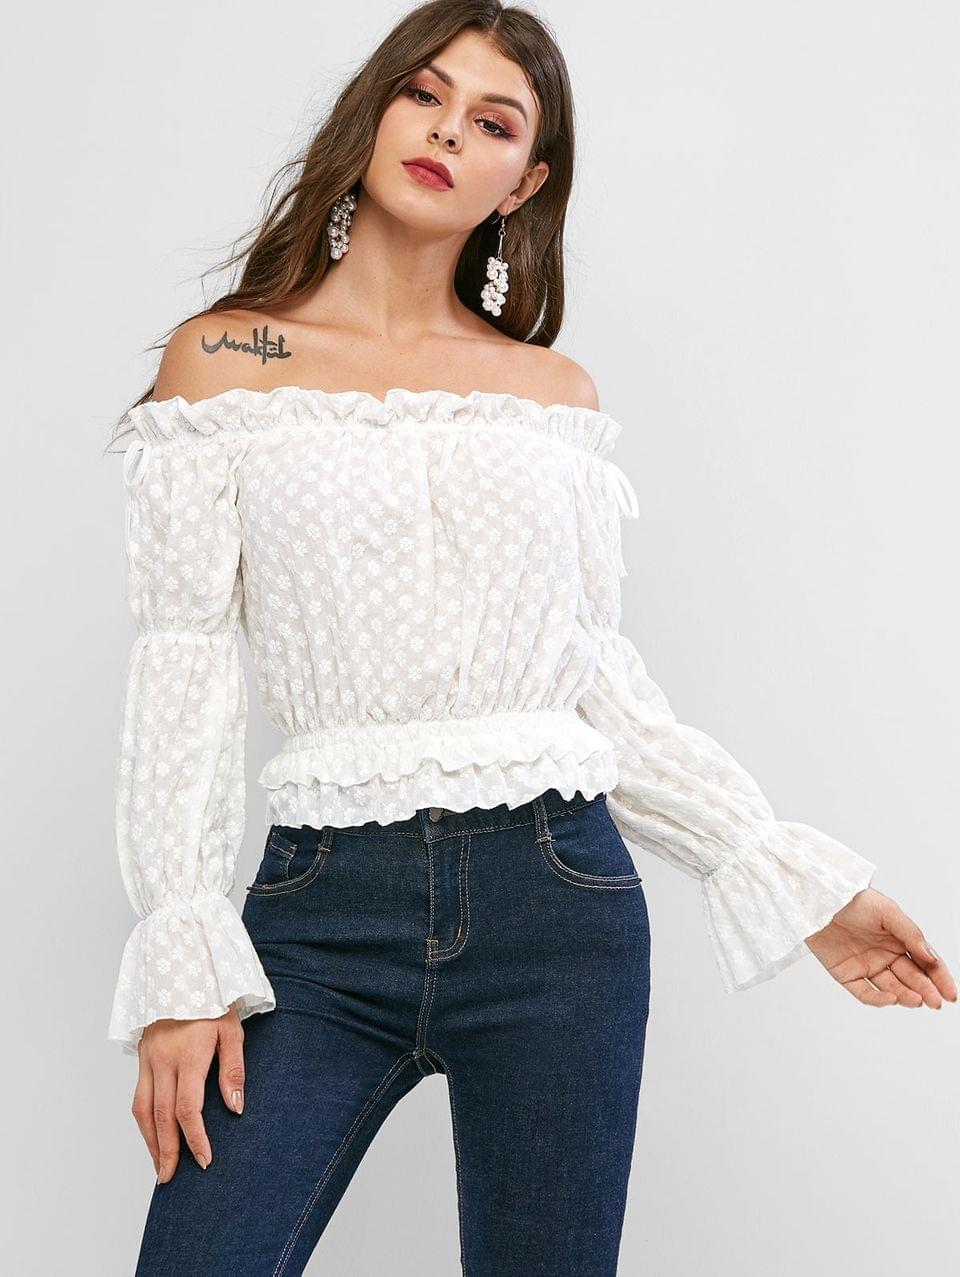 Women's Poet Sleeve Floral Embroidered Off Shoulder Blouse - White M